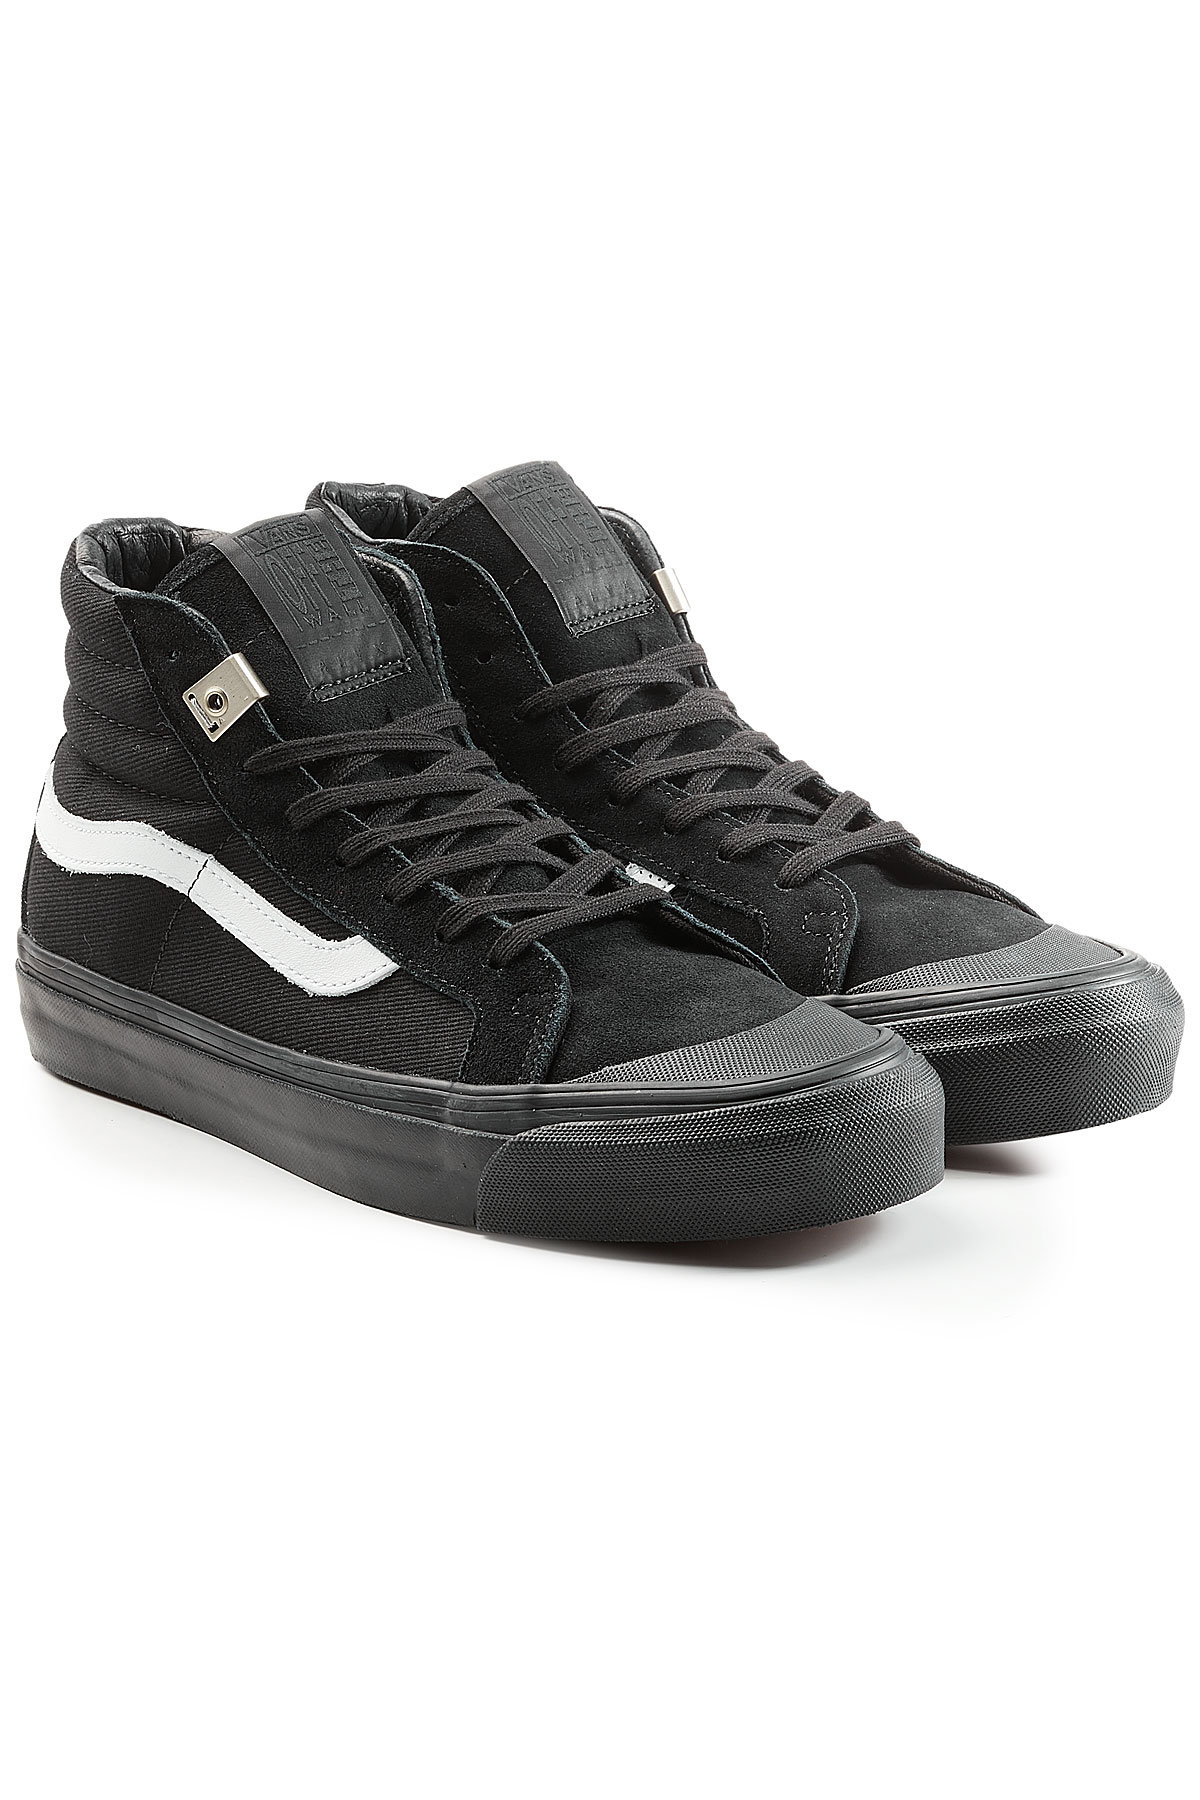 Vans OG 138 SK8 High Top Canvas Sneakers with Leather Gr. US 7.5 VZU2ozRw